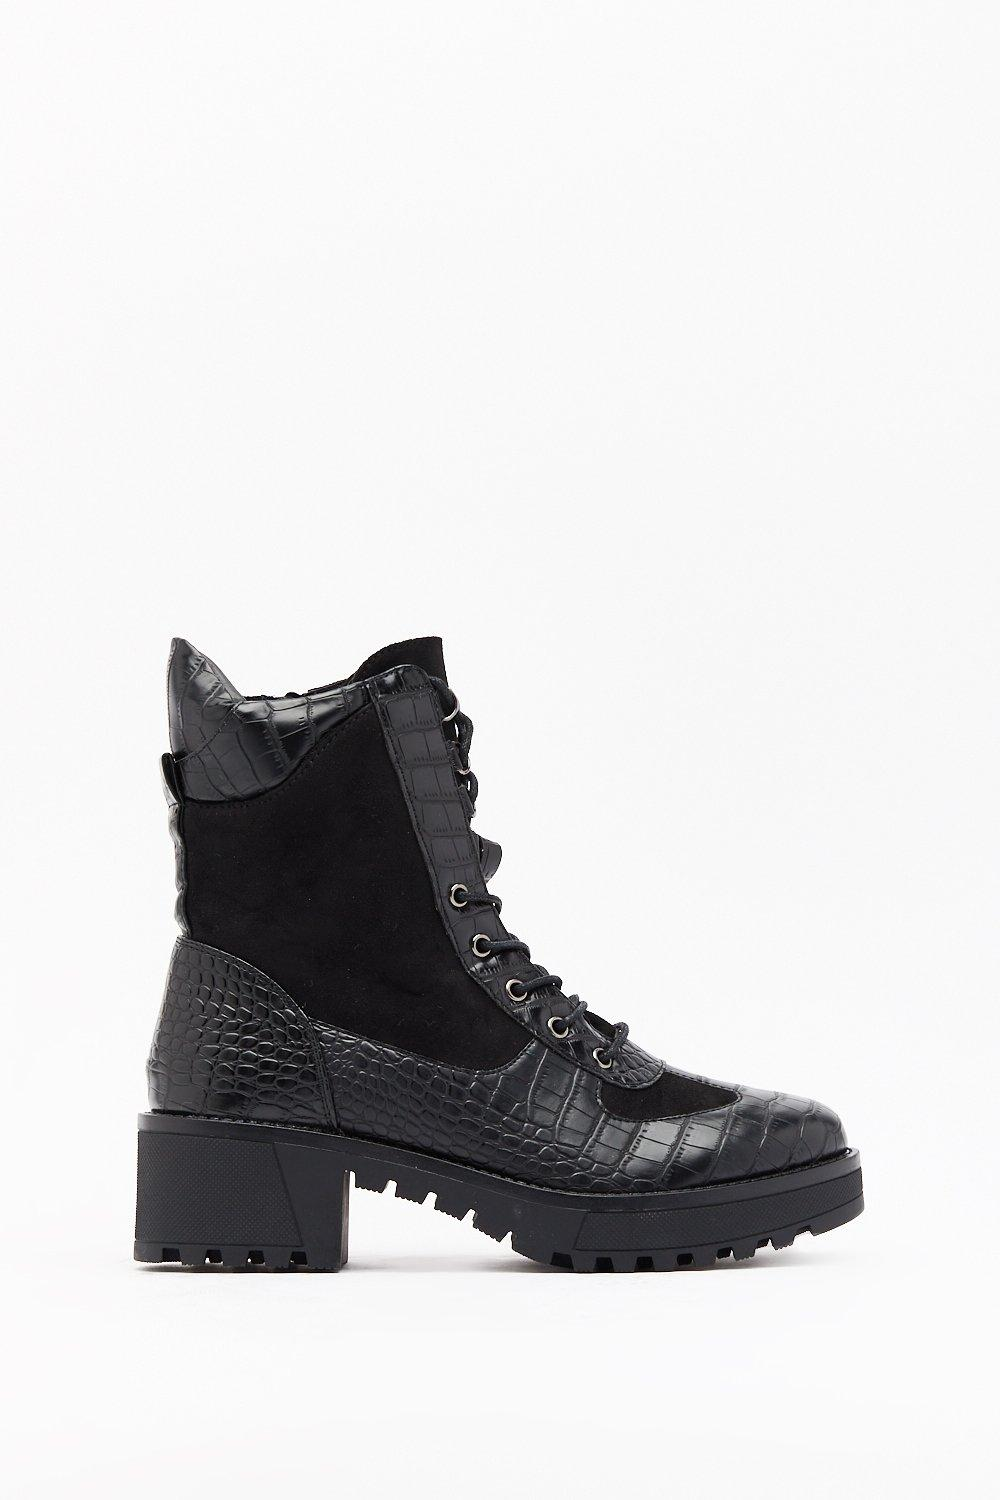 Image of Croc You Want Faux Leather Hiker Boots